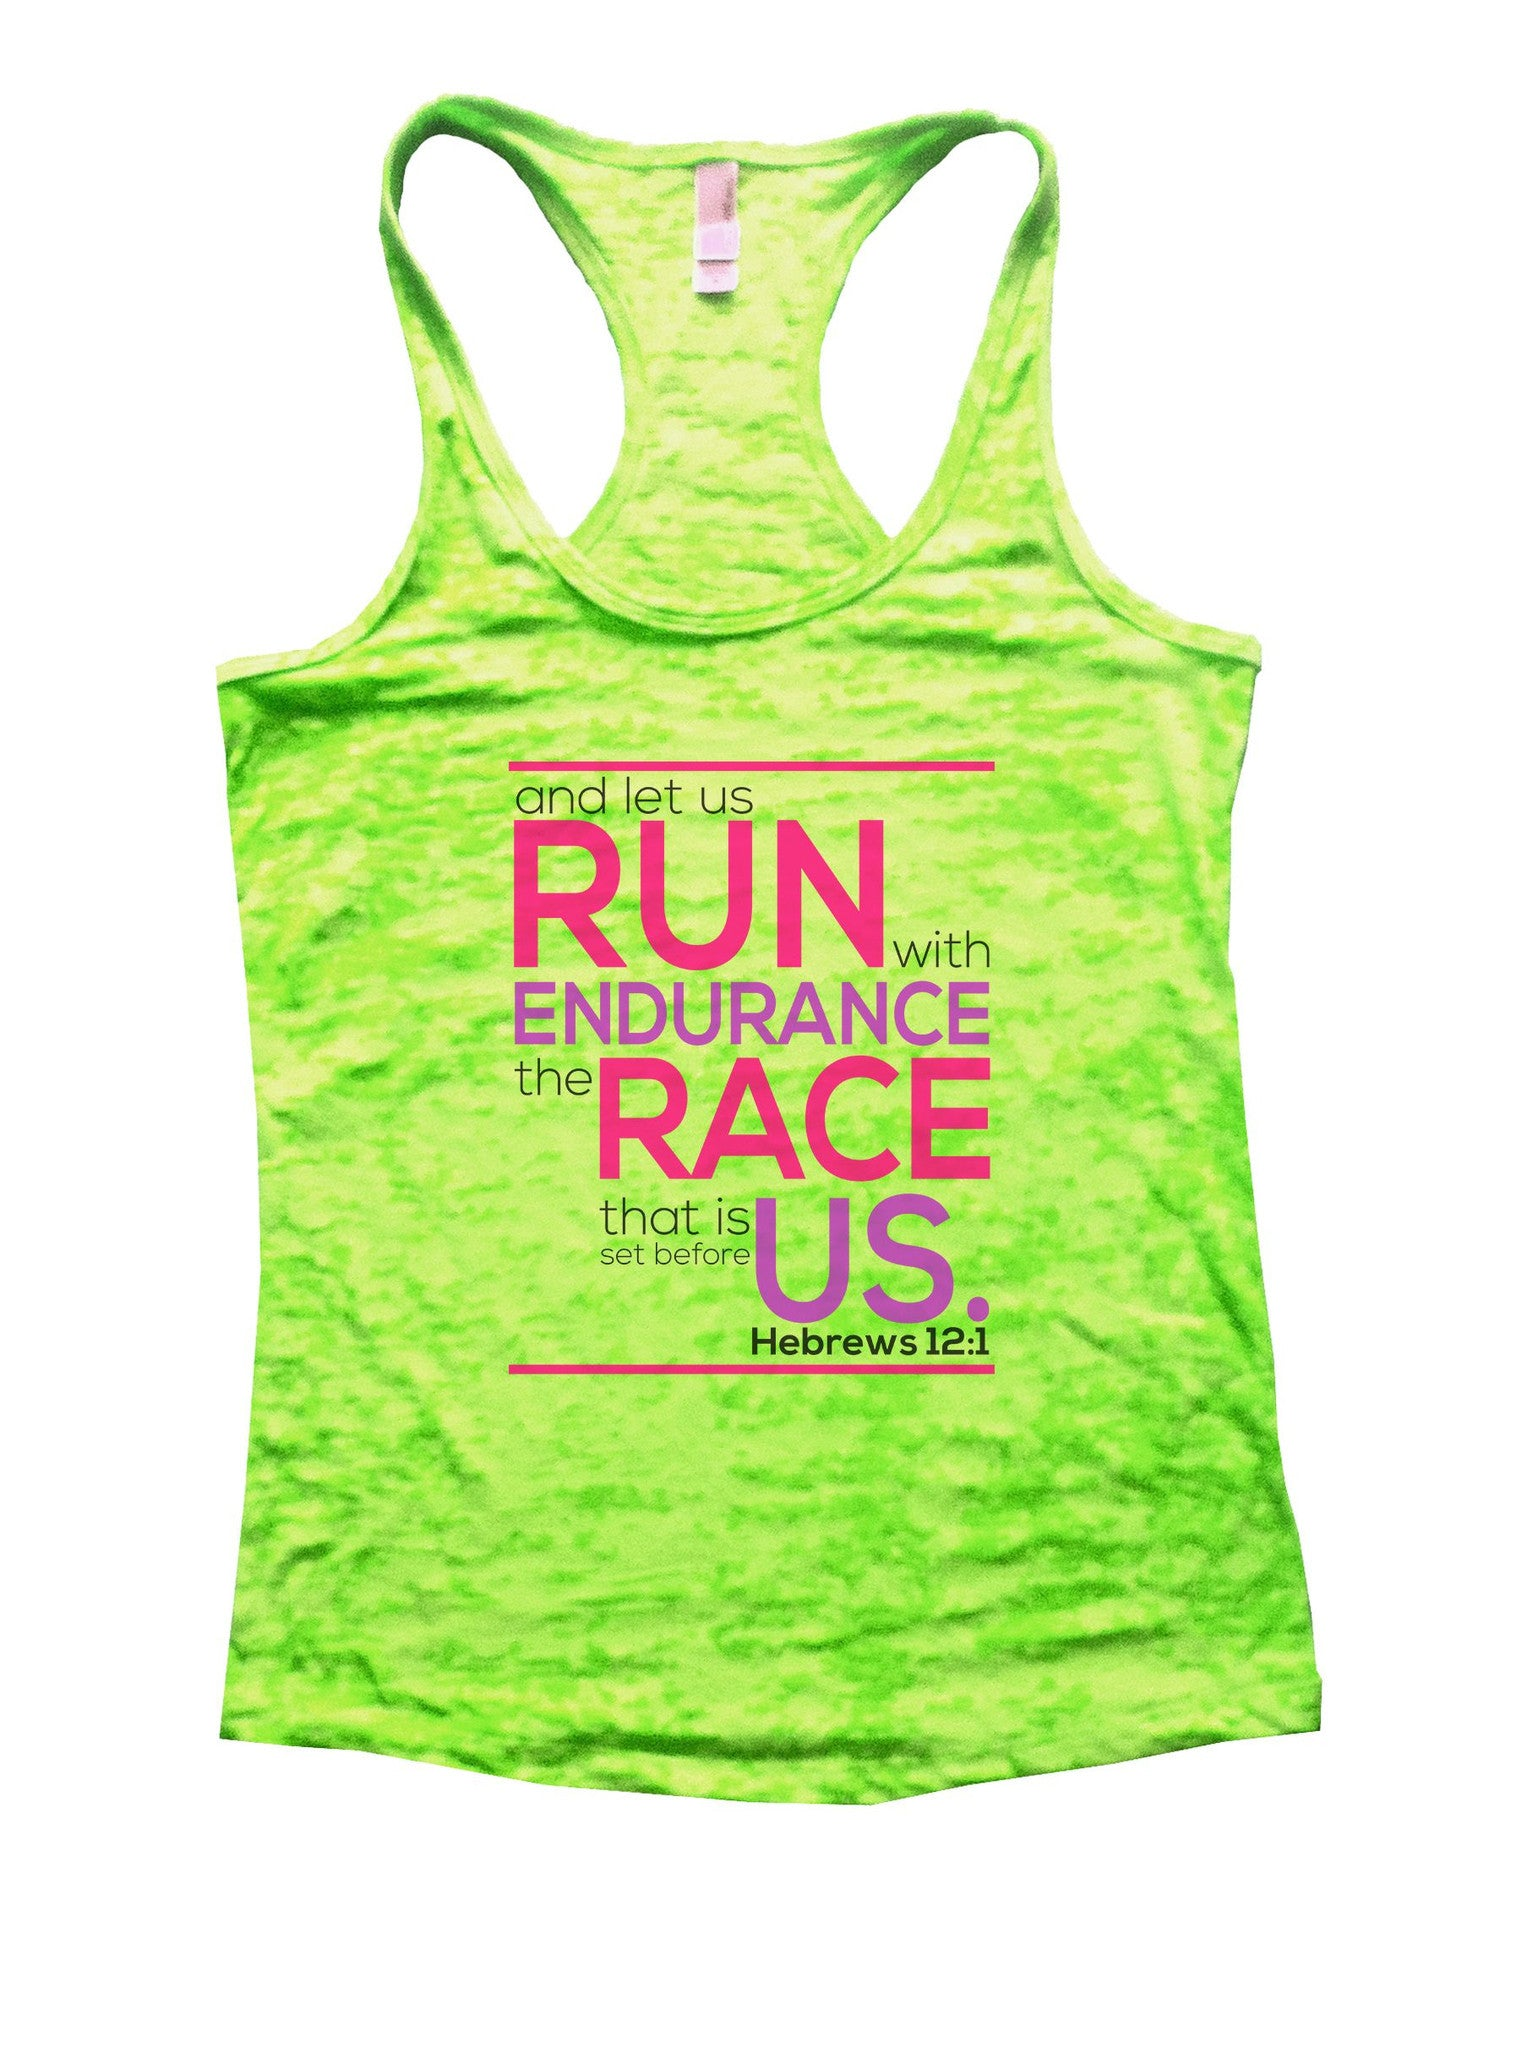 Run Endurance Race Us Burnout Tank Top By BurnoutTankTops.com - 1036 - Funny Shirts Tank Tops Burnouts and Triblends  - 1